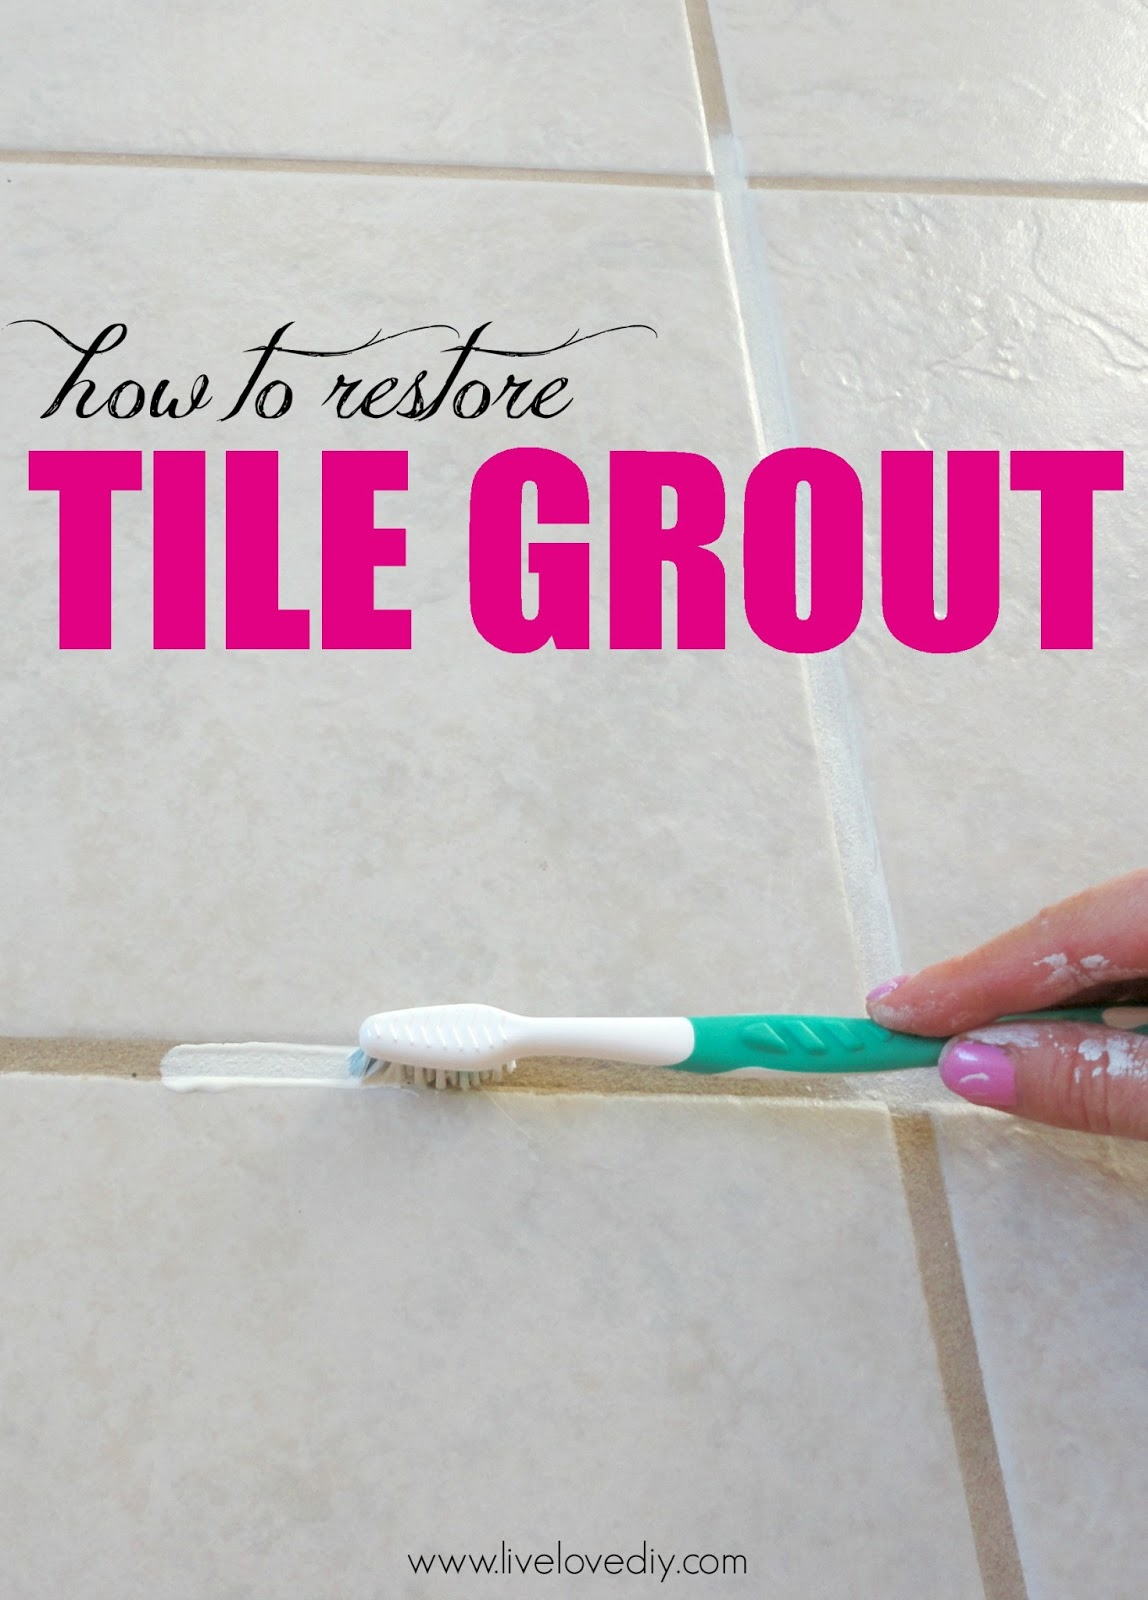 Bathroom modern this method to clean bathroom tiles is 100 times more - How To Restore Dirty Tile Grout This Is So Great